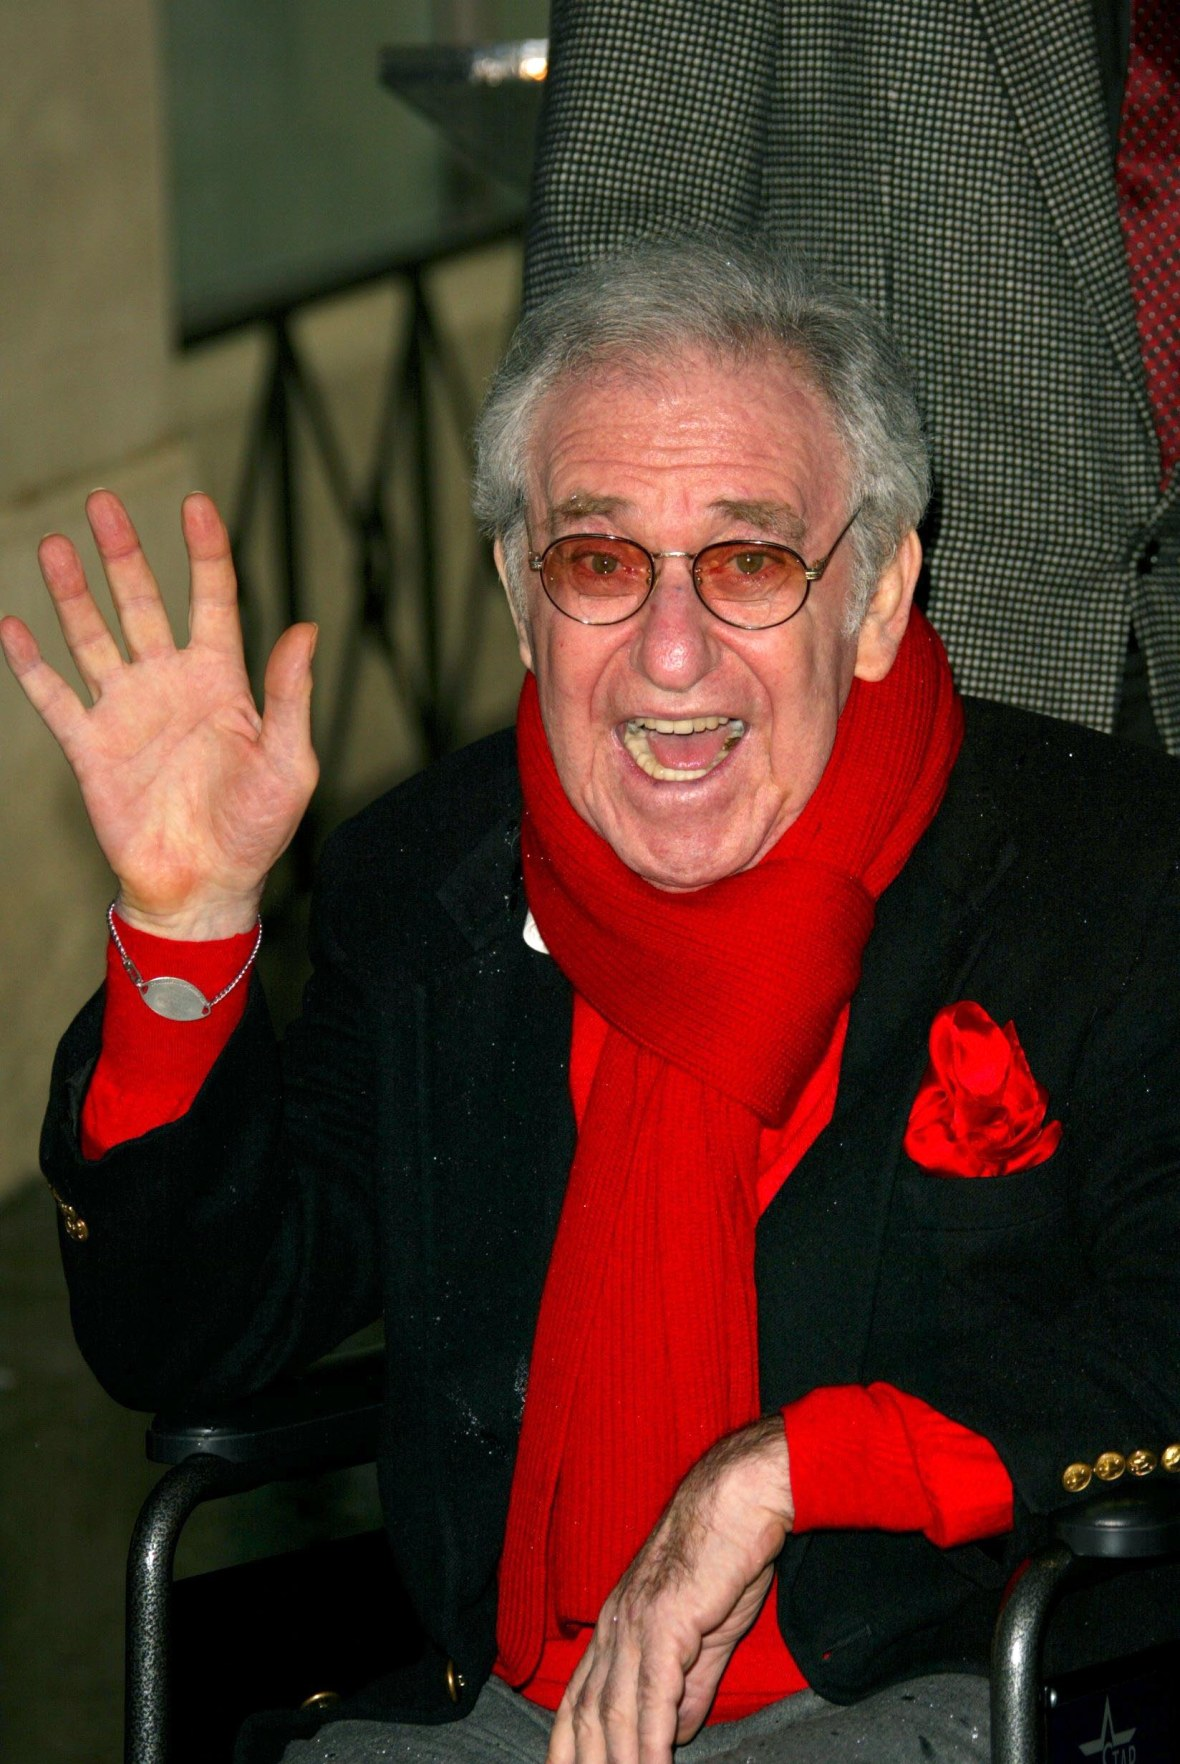 Soupy Sales in 2005